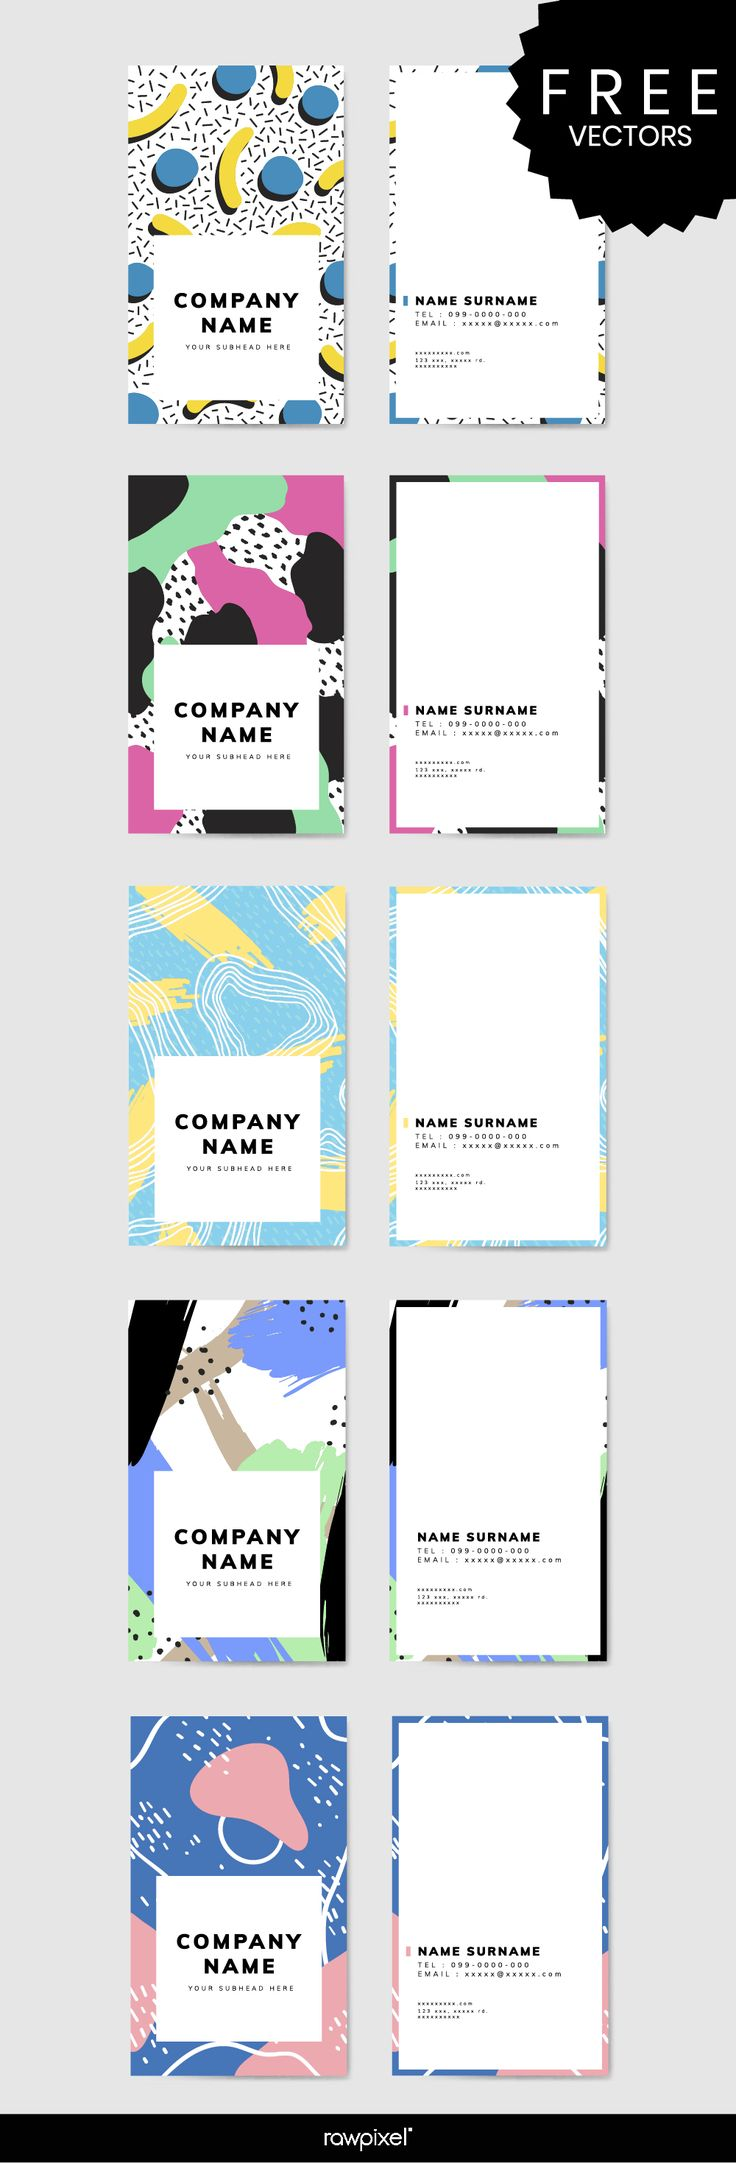 Download modern Memphis theme business card mockups and corporate identity design vectors at rawpixel.com